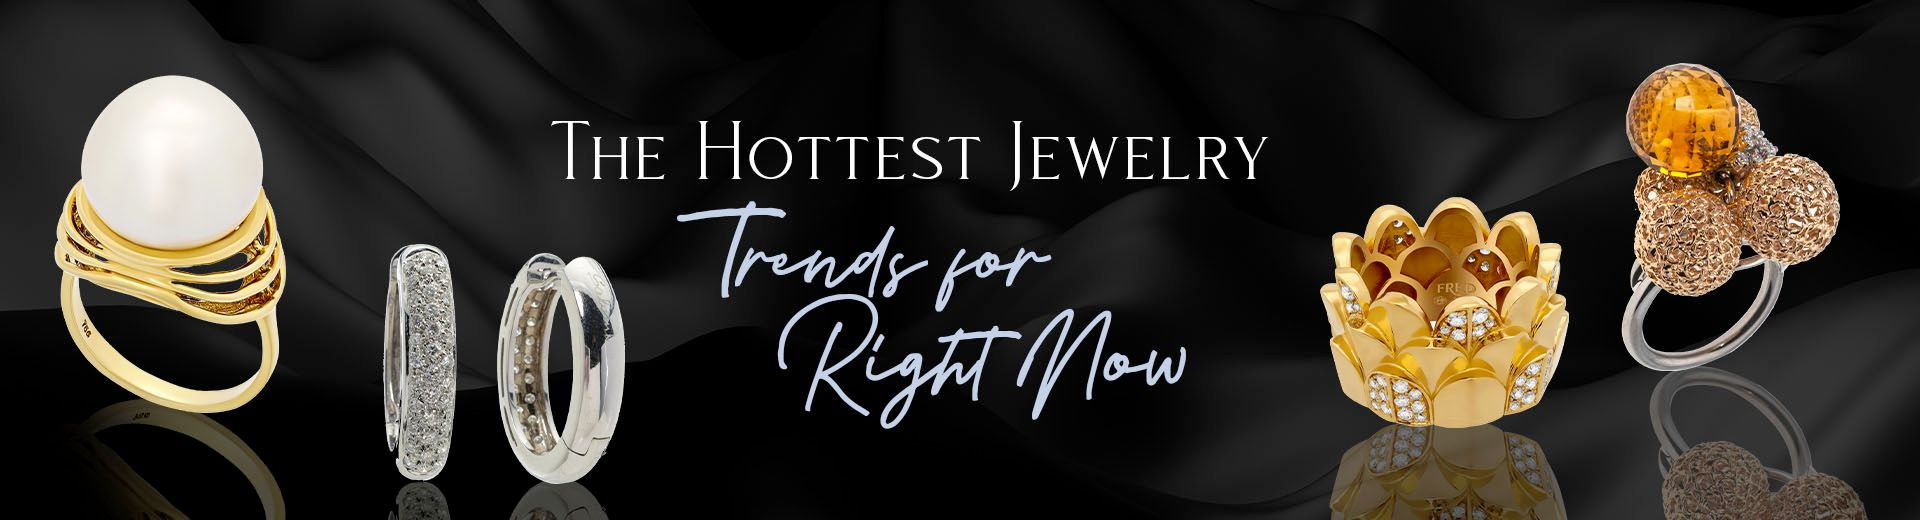 The Hottest Jewelry Trends for Right Now